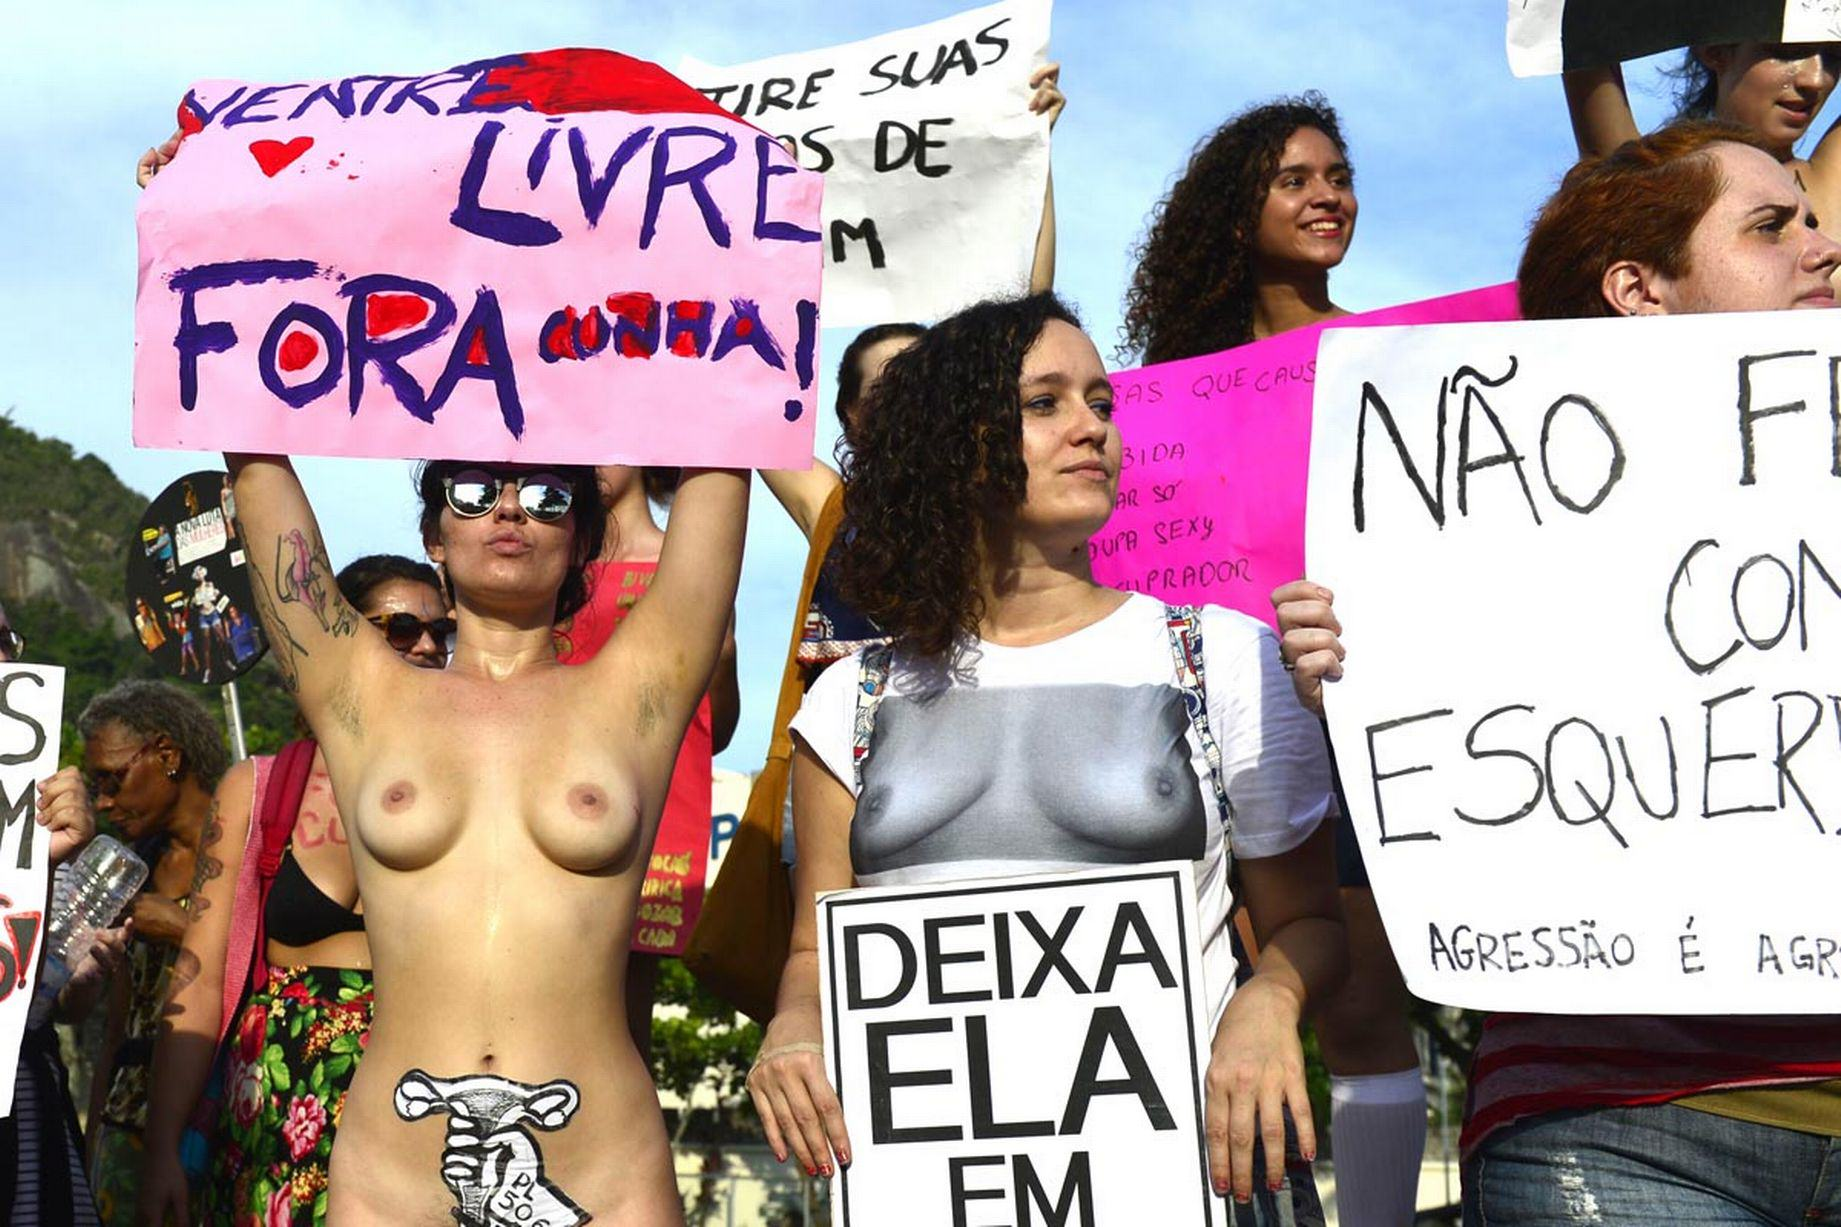 Hundreds Of Women Strip In SlutWalk Protest Against Sexual Violence UNILAD rex62388